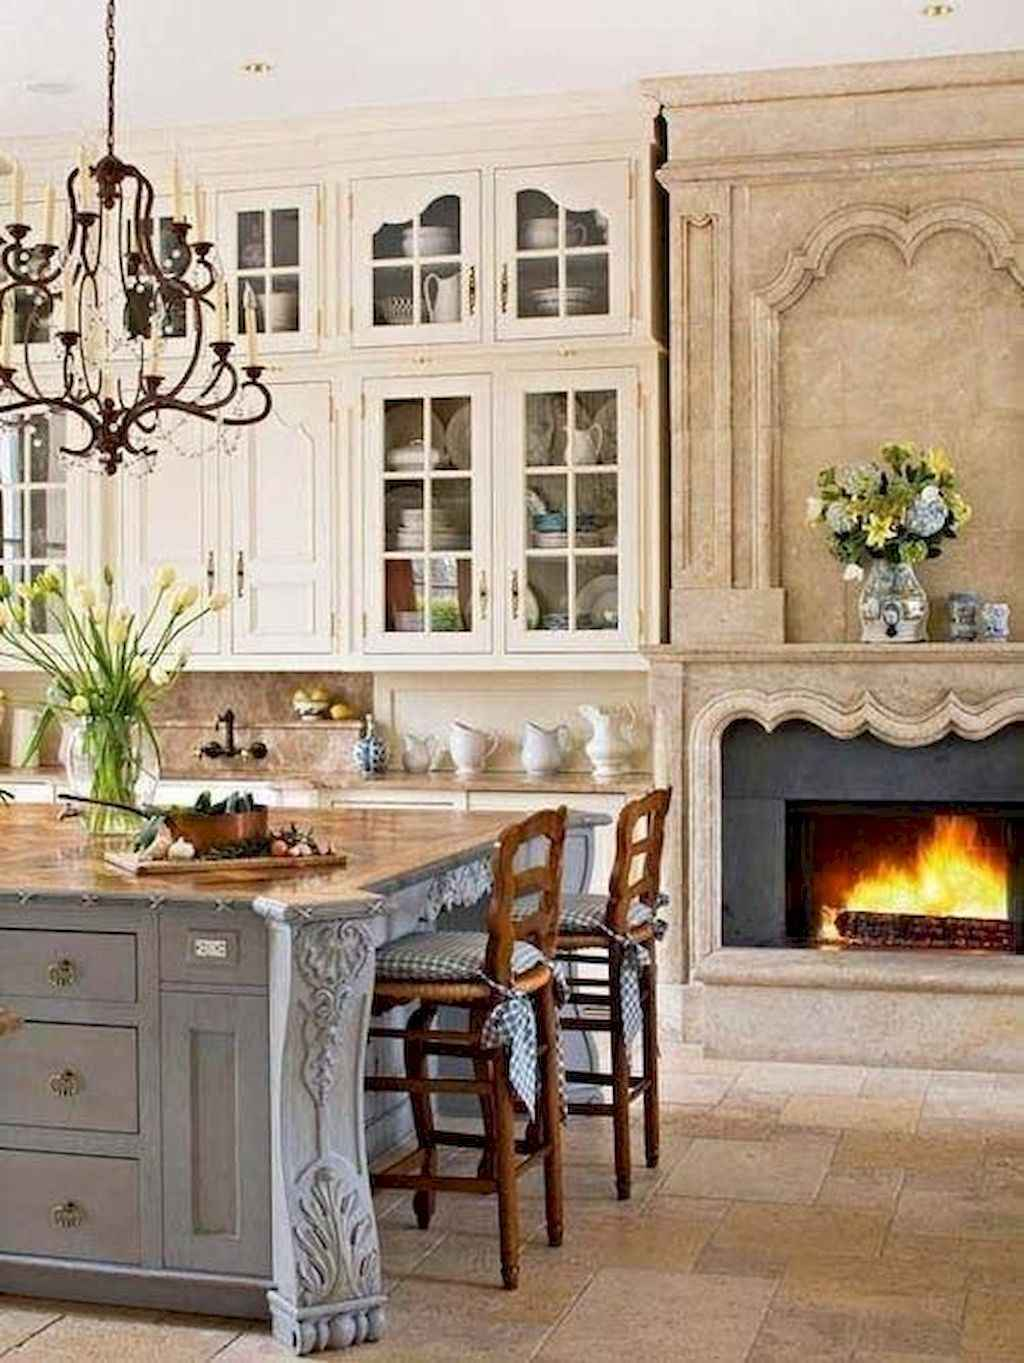 incredible french kitchen design | 26 incredible french country kitchen design ideas ...